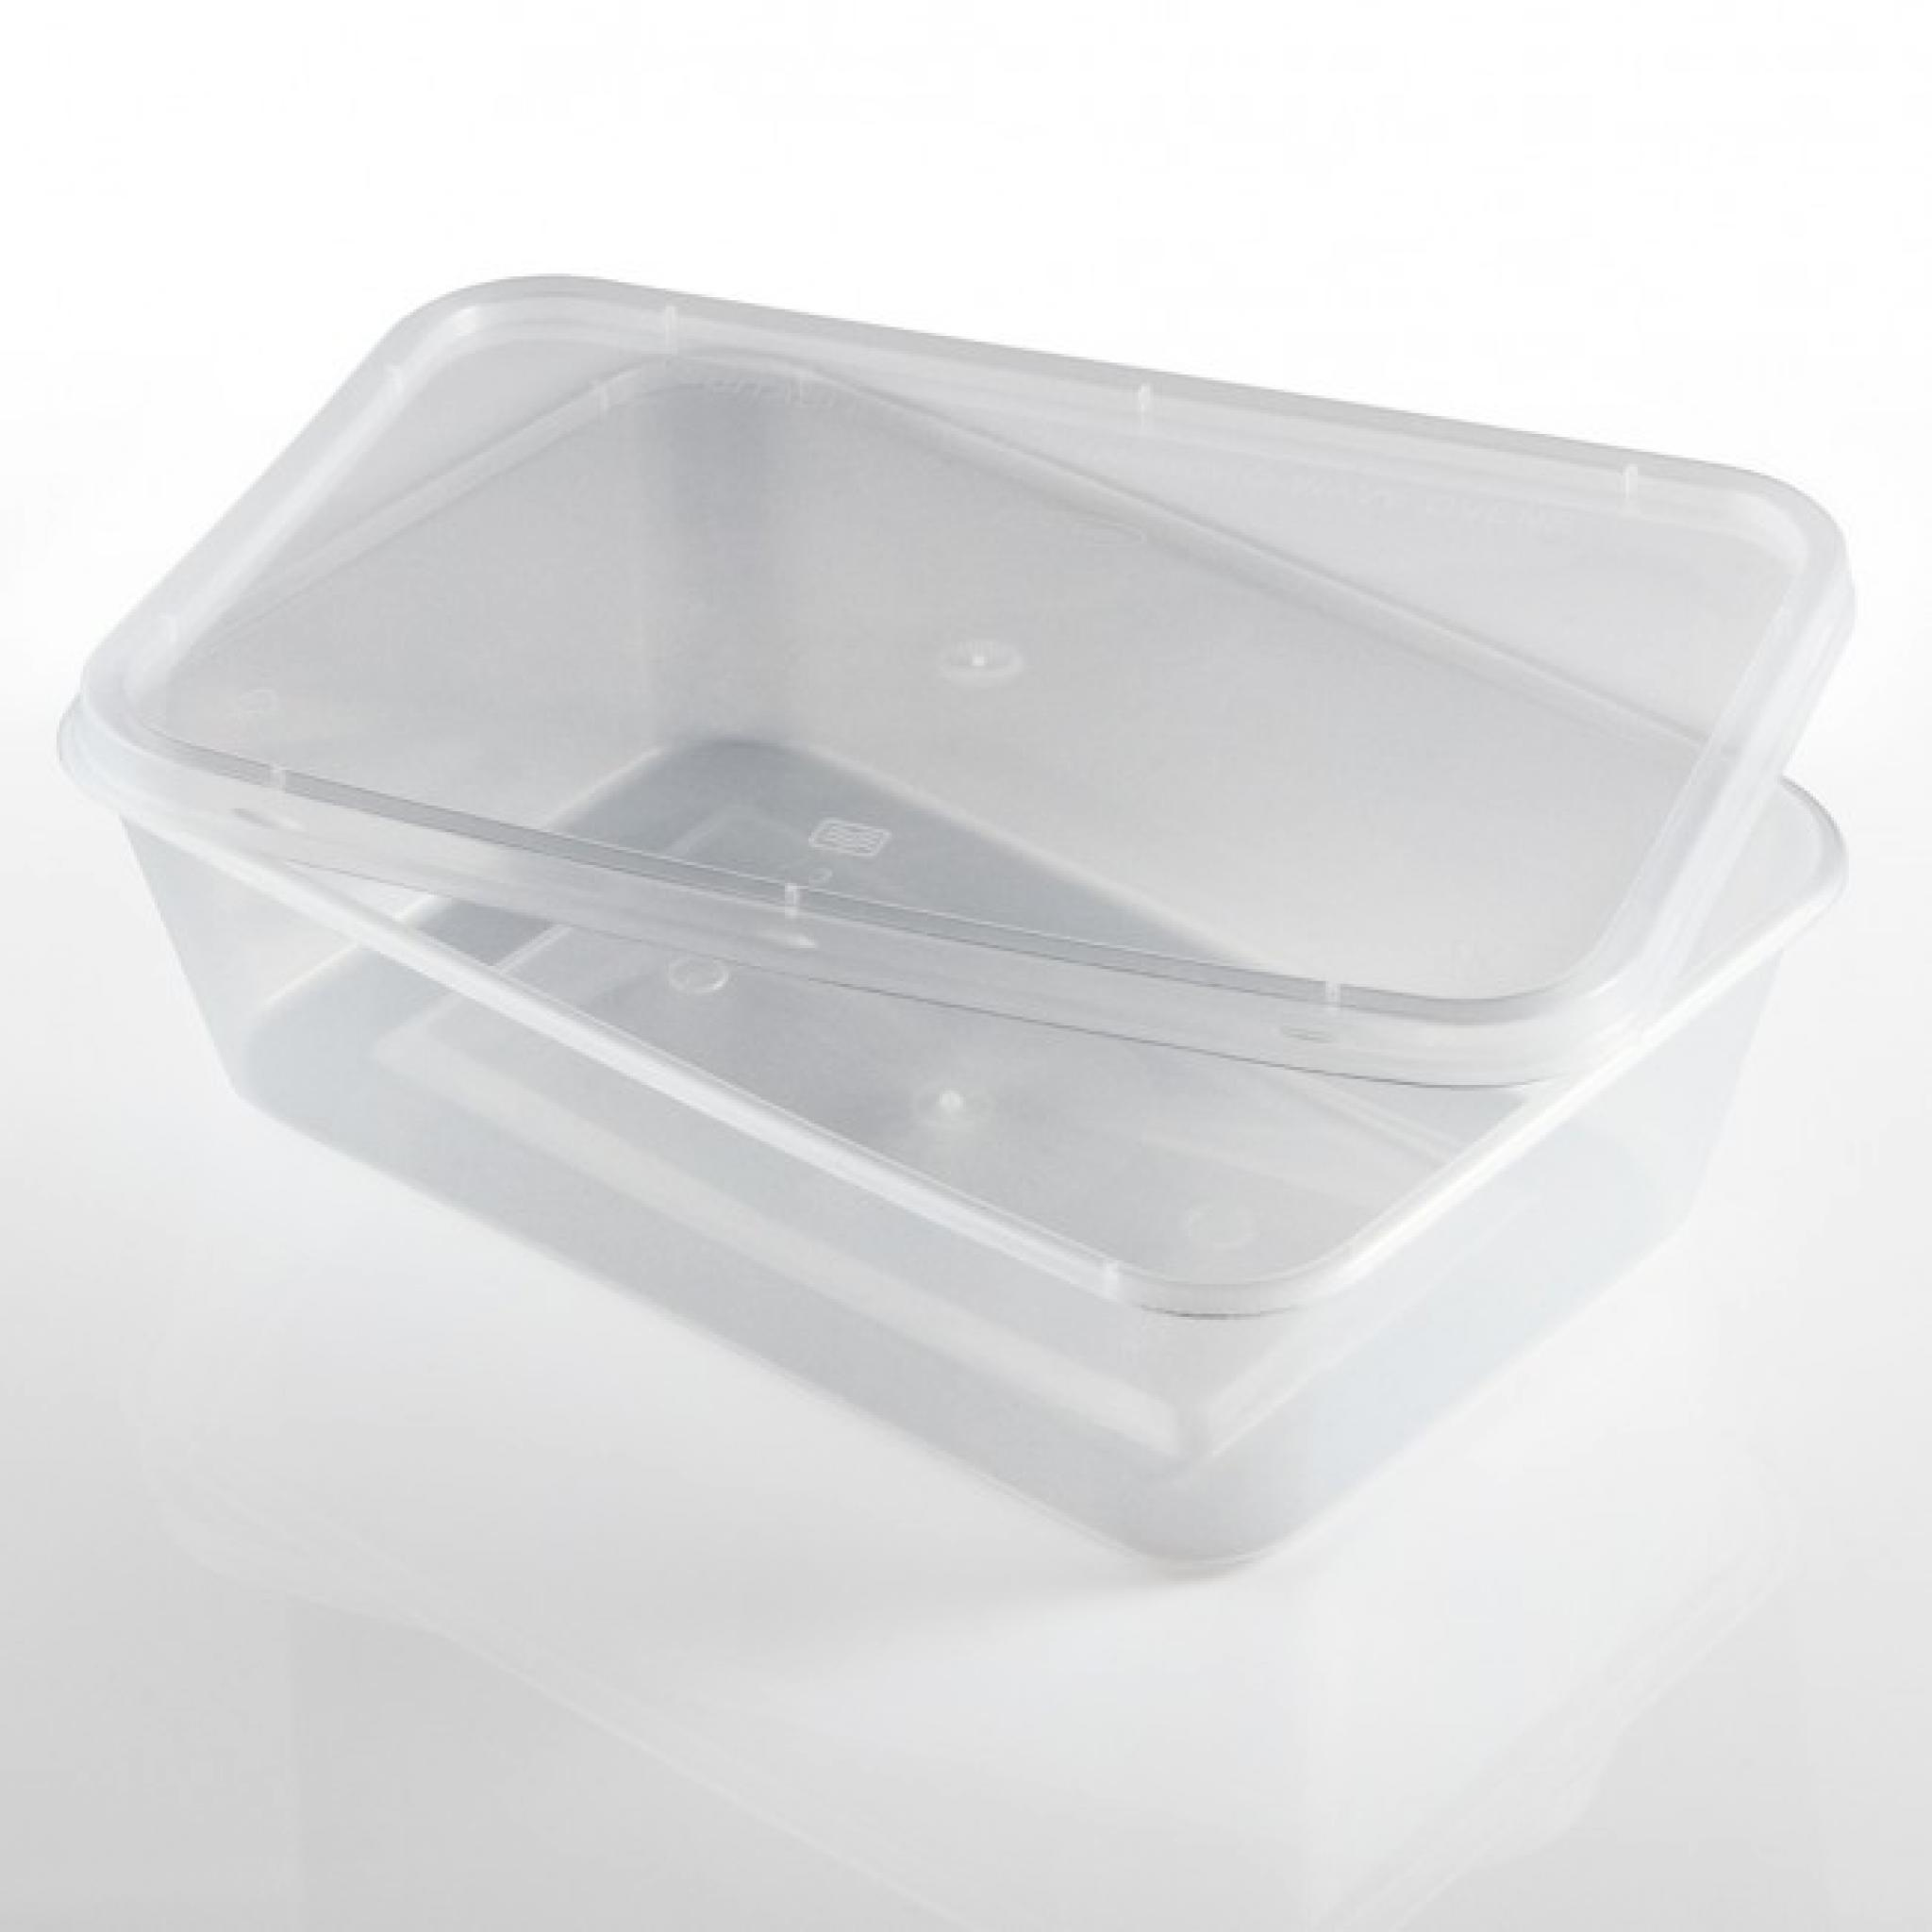 Rectangular 750ml Microwave Clear Plastic Food Containers For Freezing Takeaway Hot Cold Foods 750cc